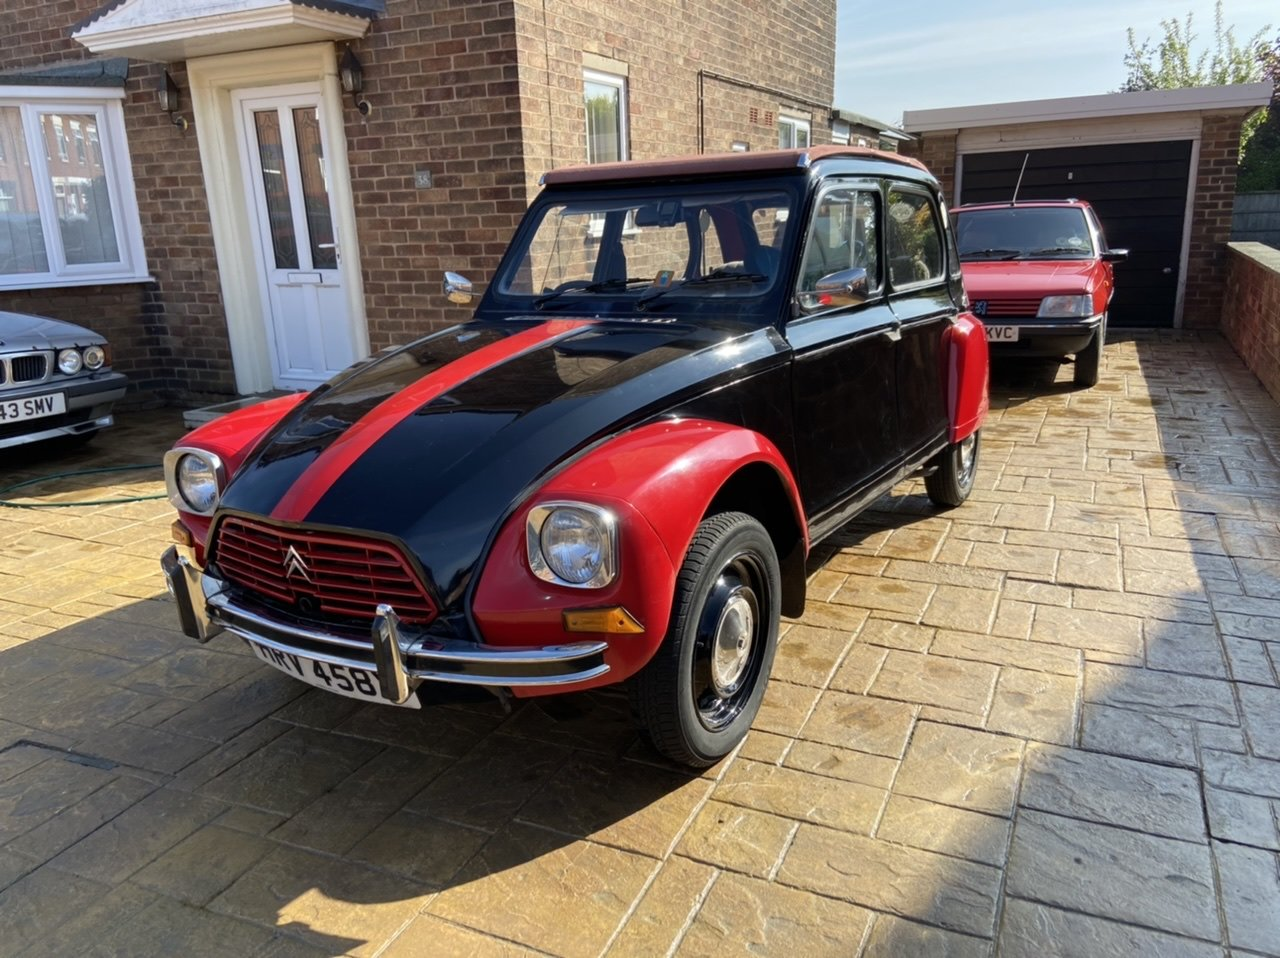 1982 Citroen Dyane Black/Red SOLD (picture 1 of 6)